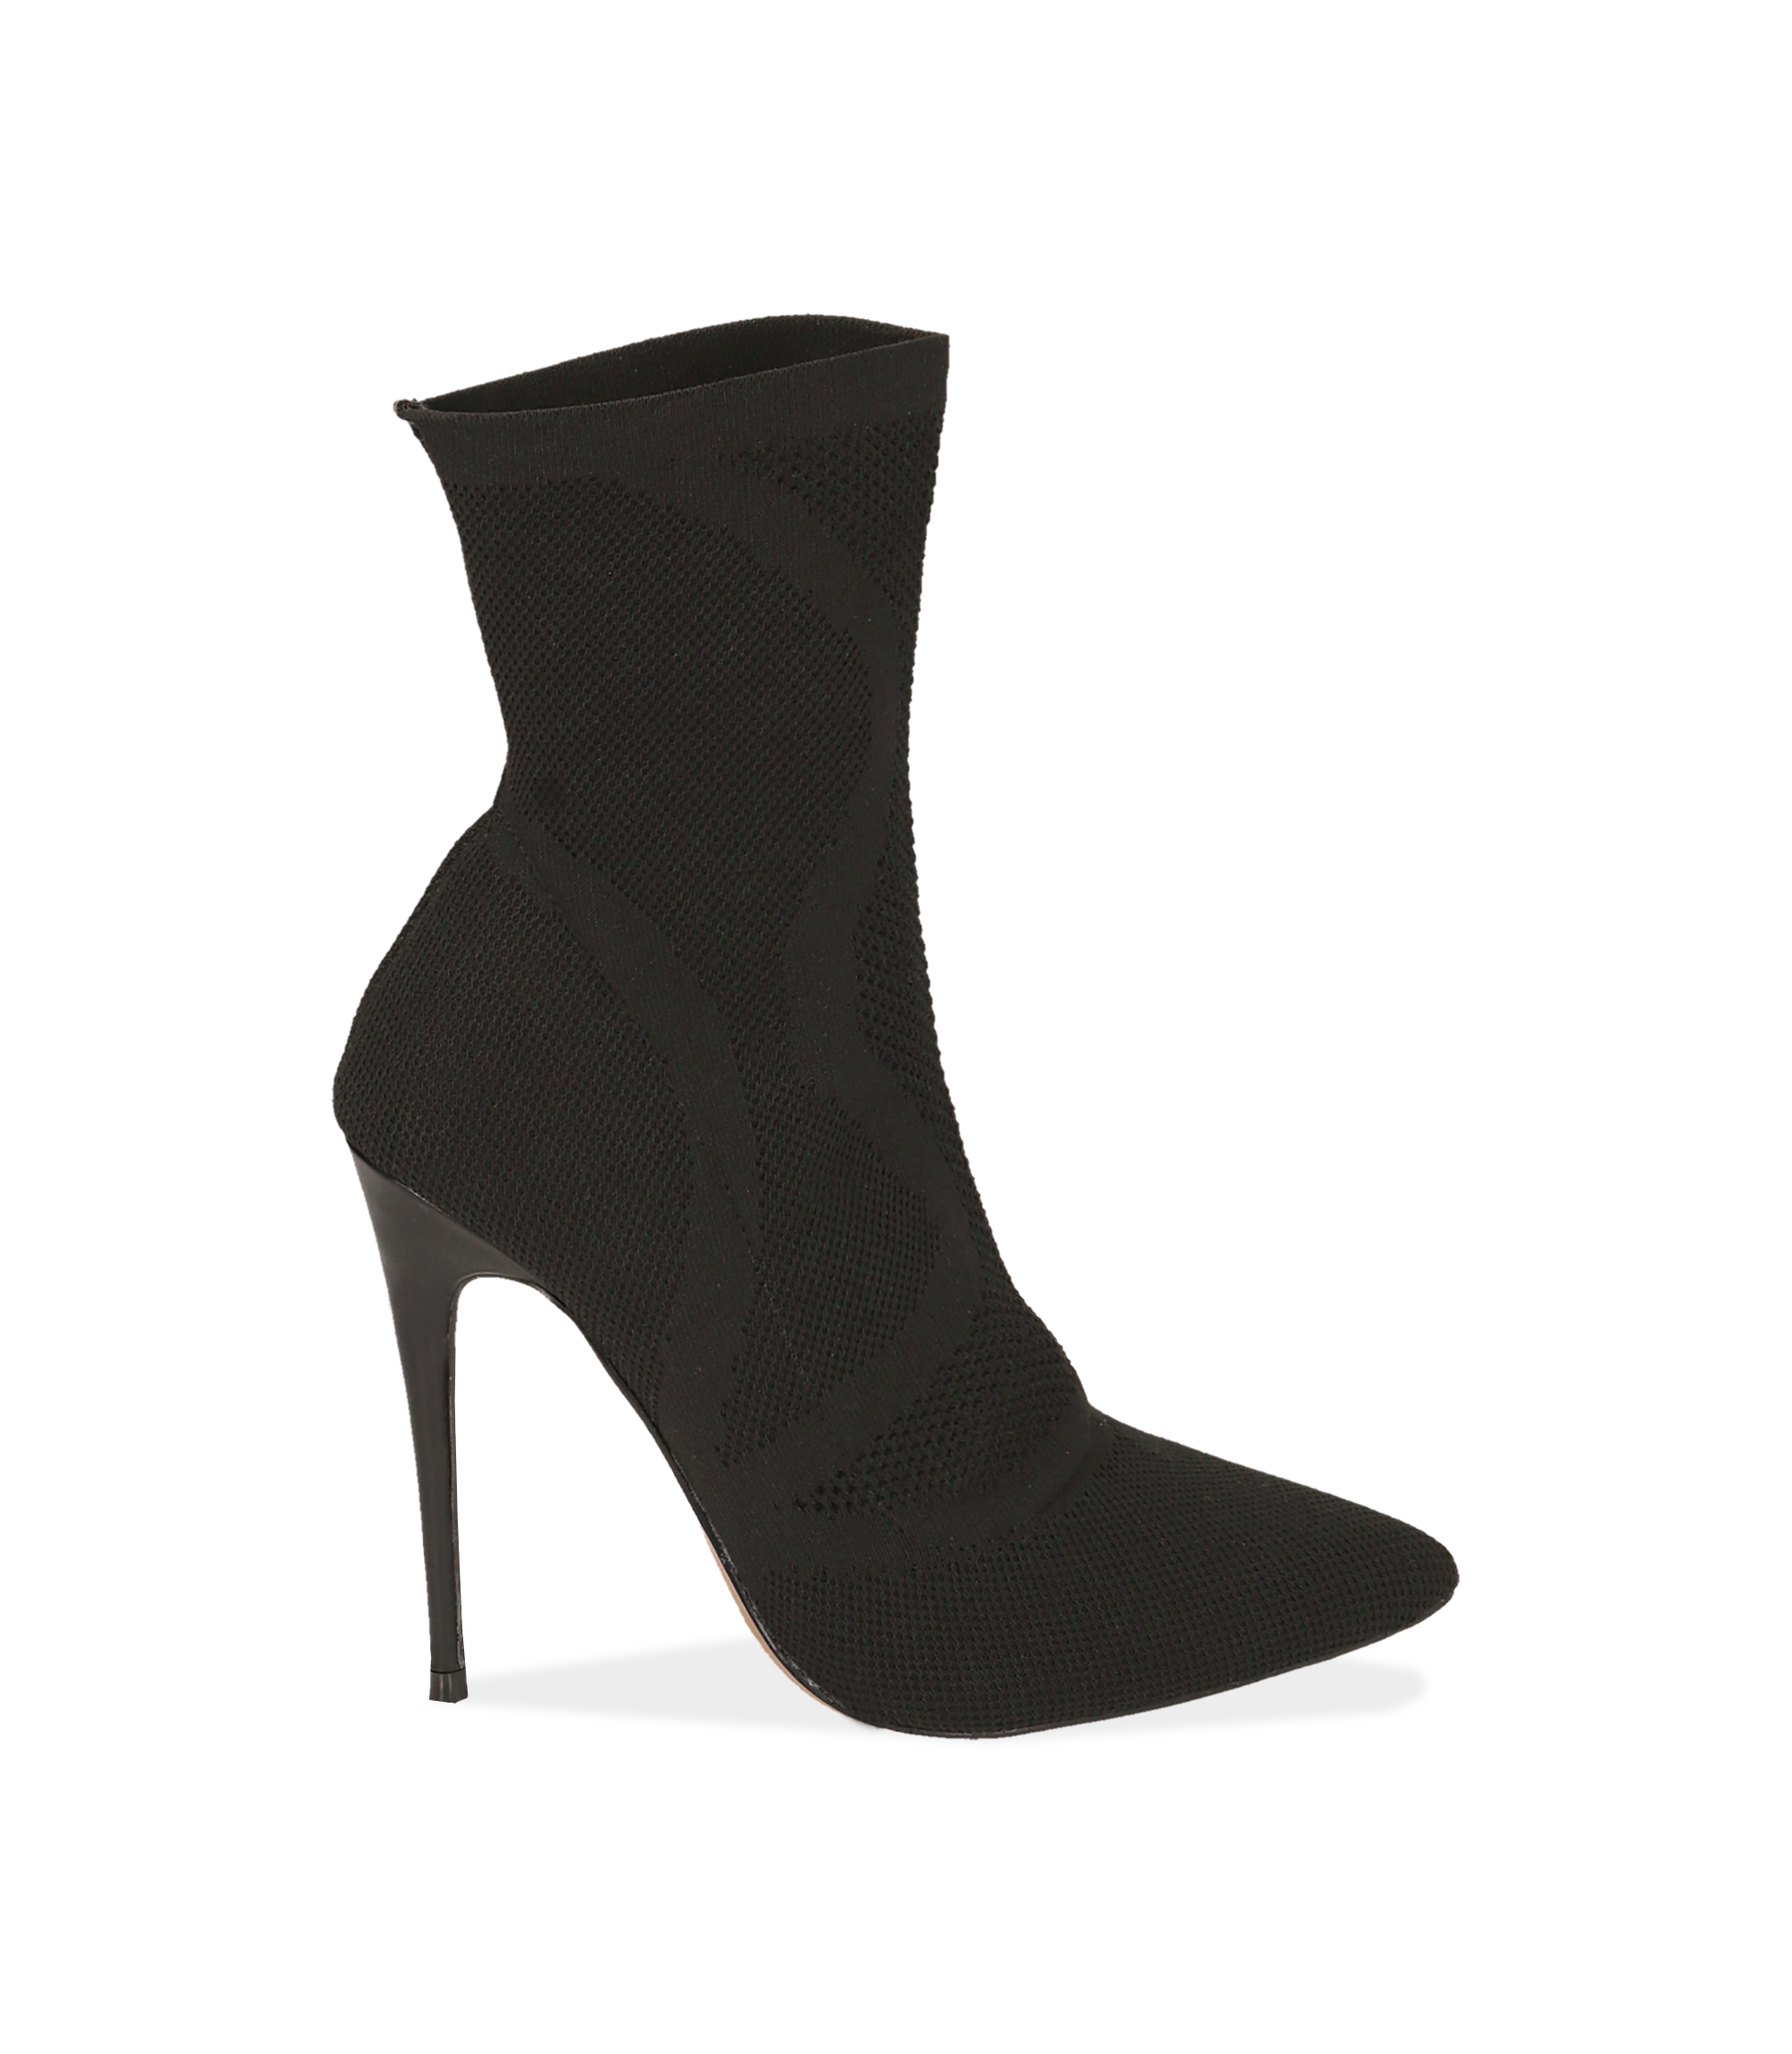 Ankle boots neri in tessuto elastico